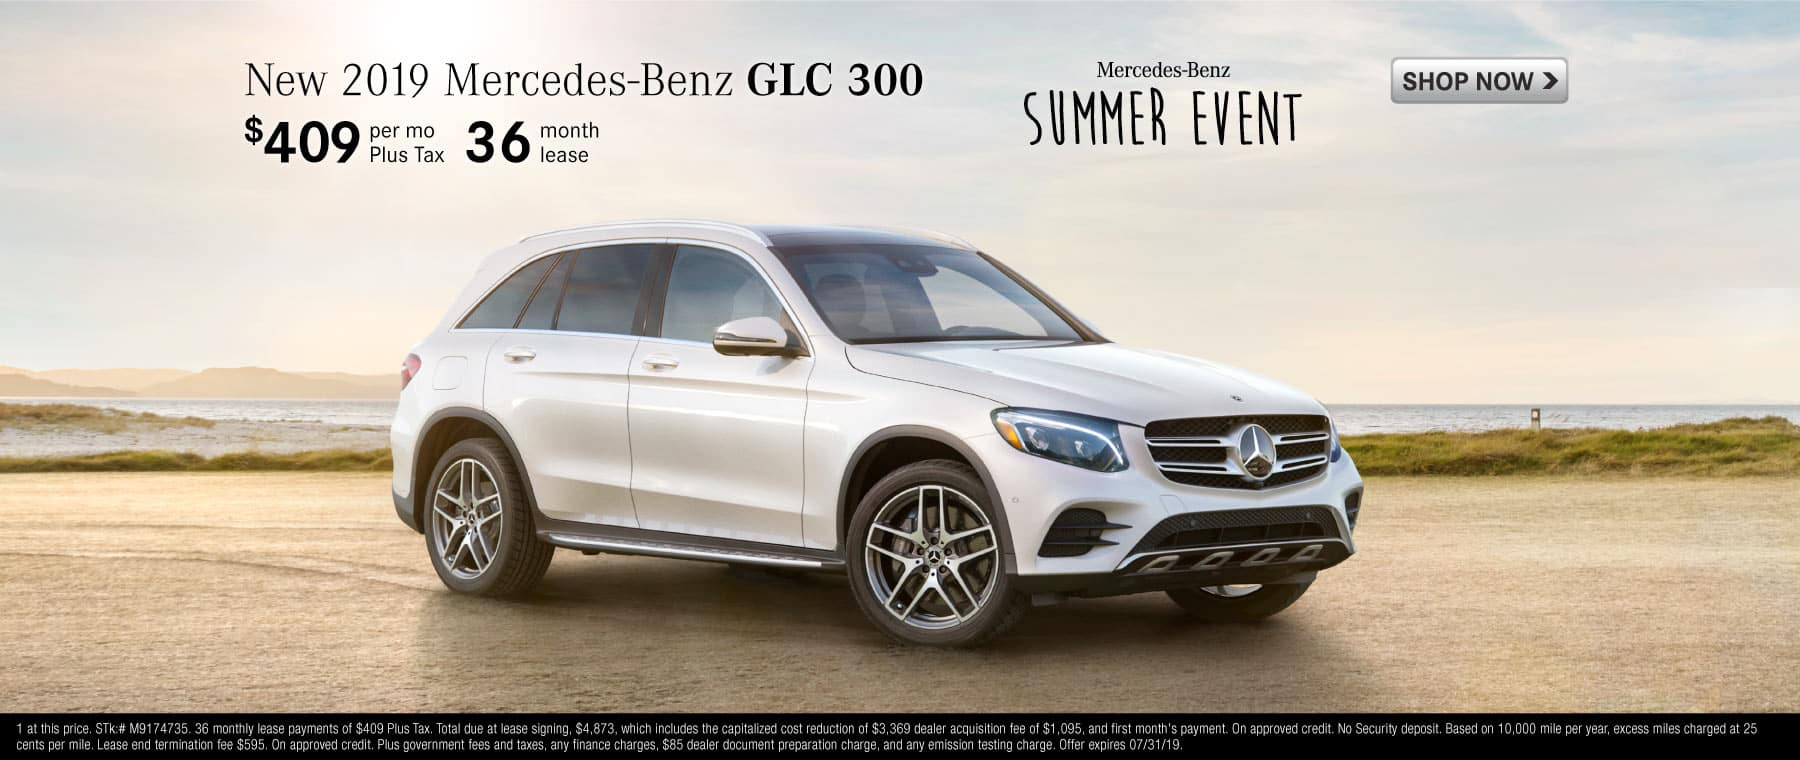 New 2019 Mercedes-Benz GLC 300, $459 per month plus tax, 36 month lease.